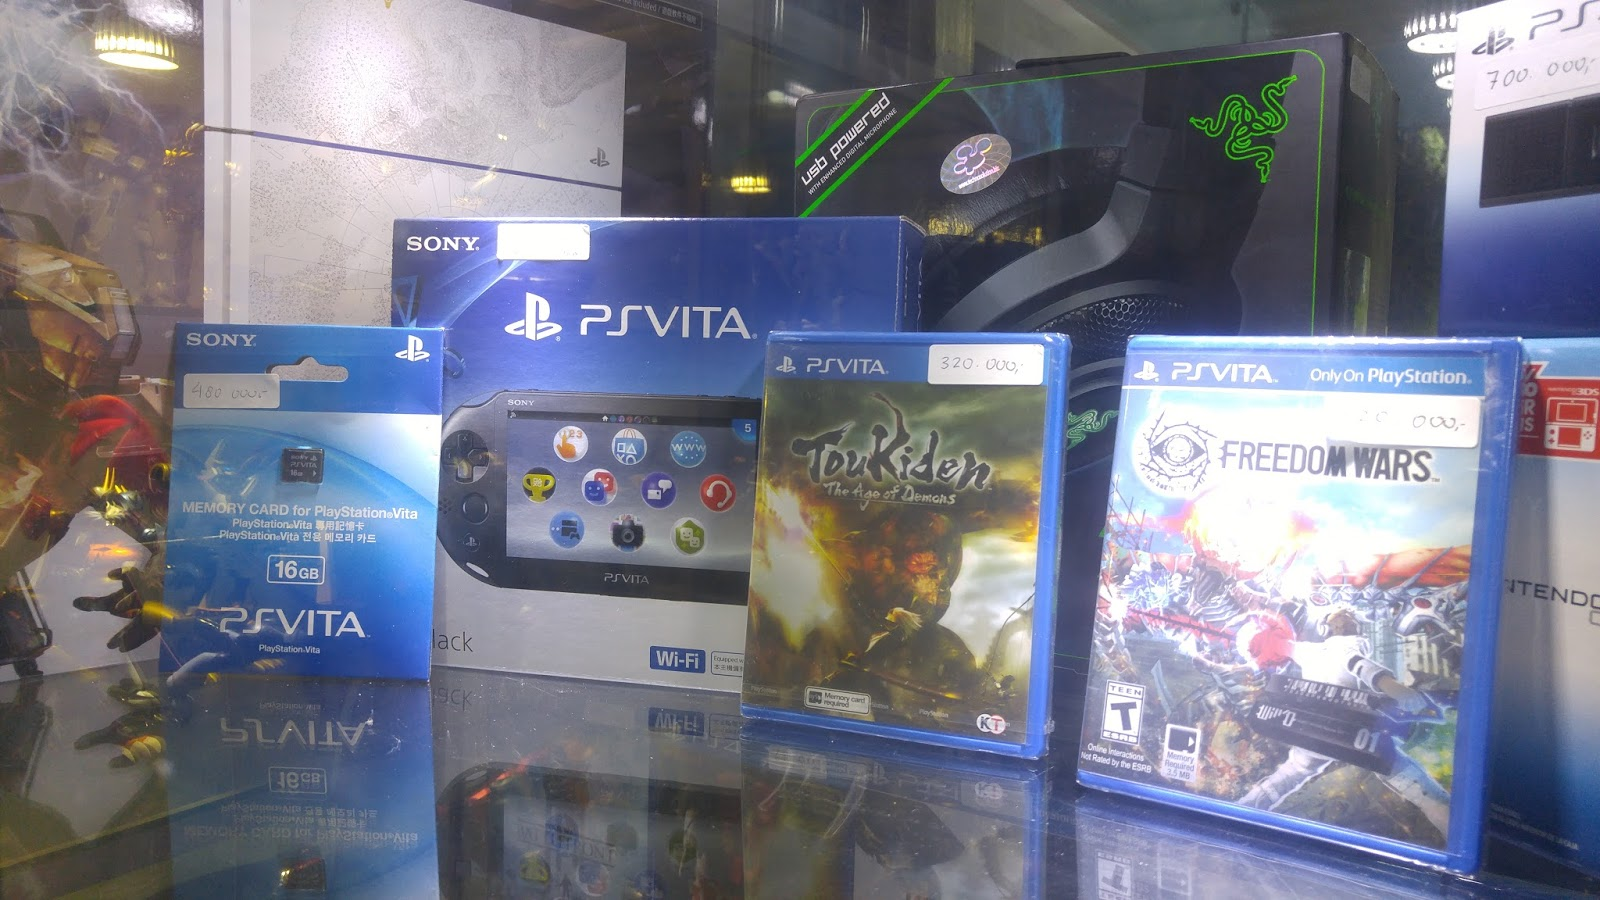 Winter Games Jogja Toko Game Ps2ps3ps4psppsvitaxbox360kinect Kaset Bd Ps4 Need For Speed  Only Reg 3 Ready Stock Judul Psvita All English Menerima Pesanan Vita